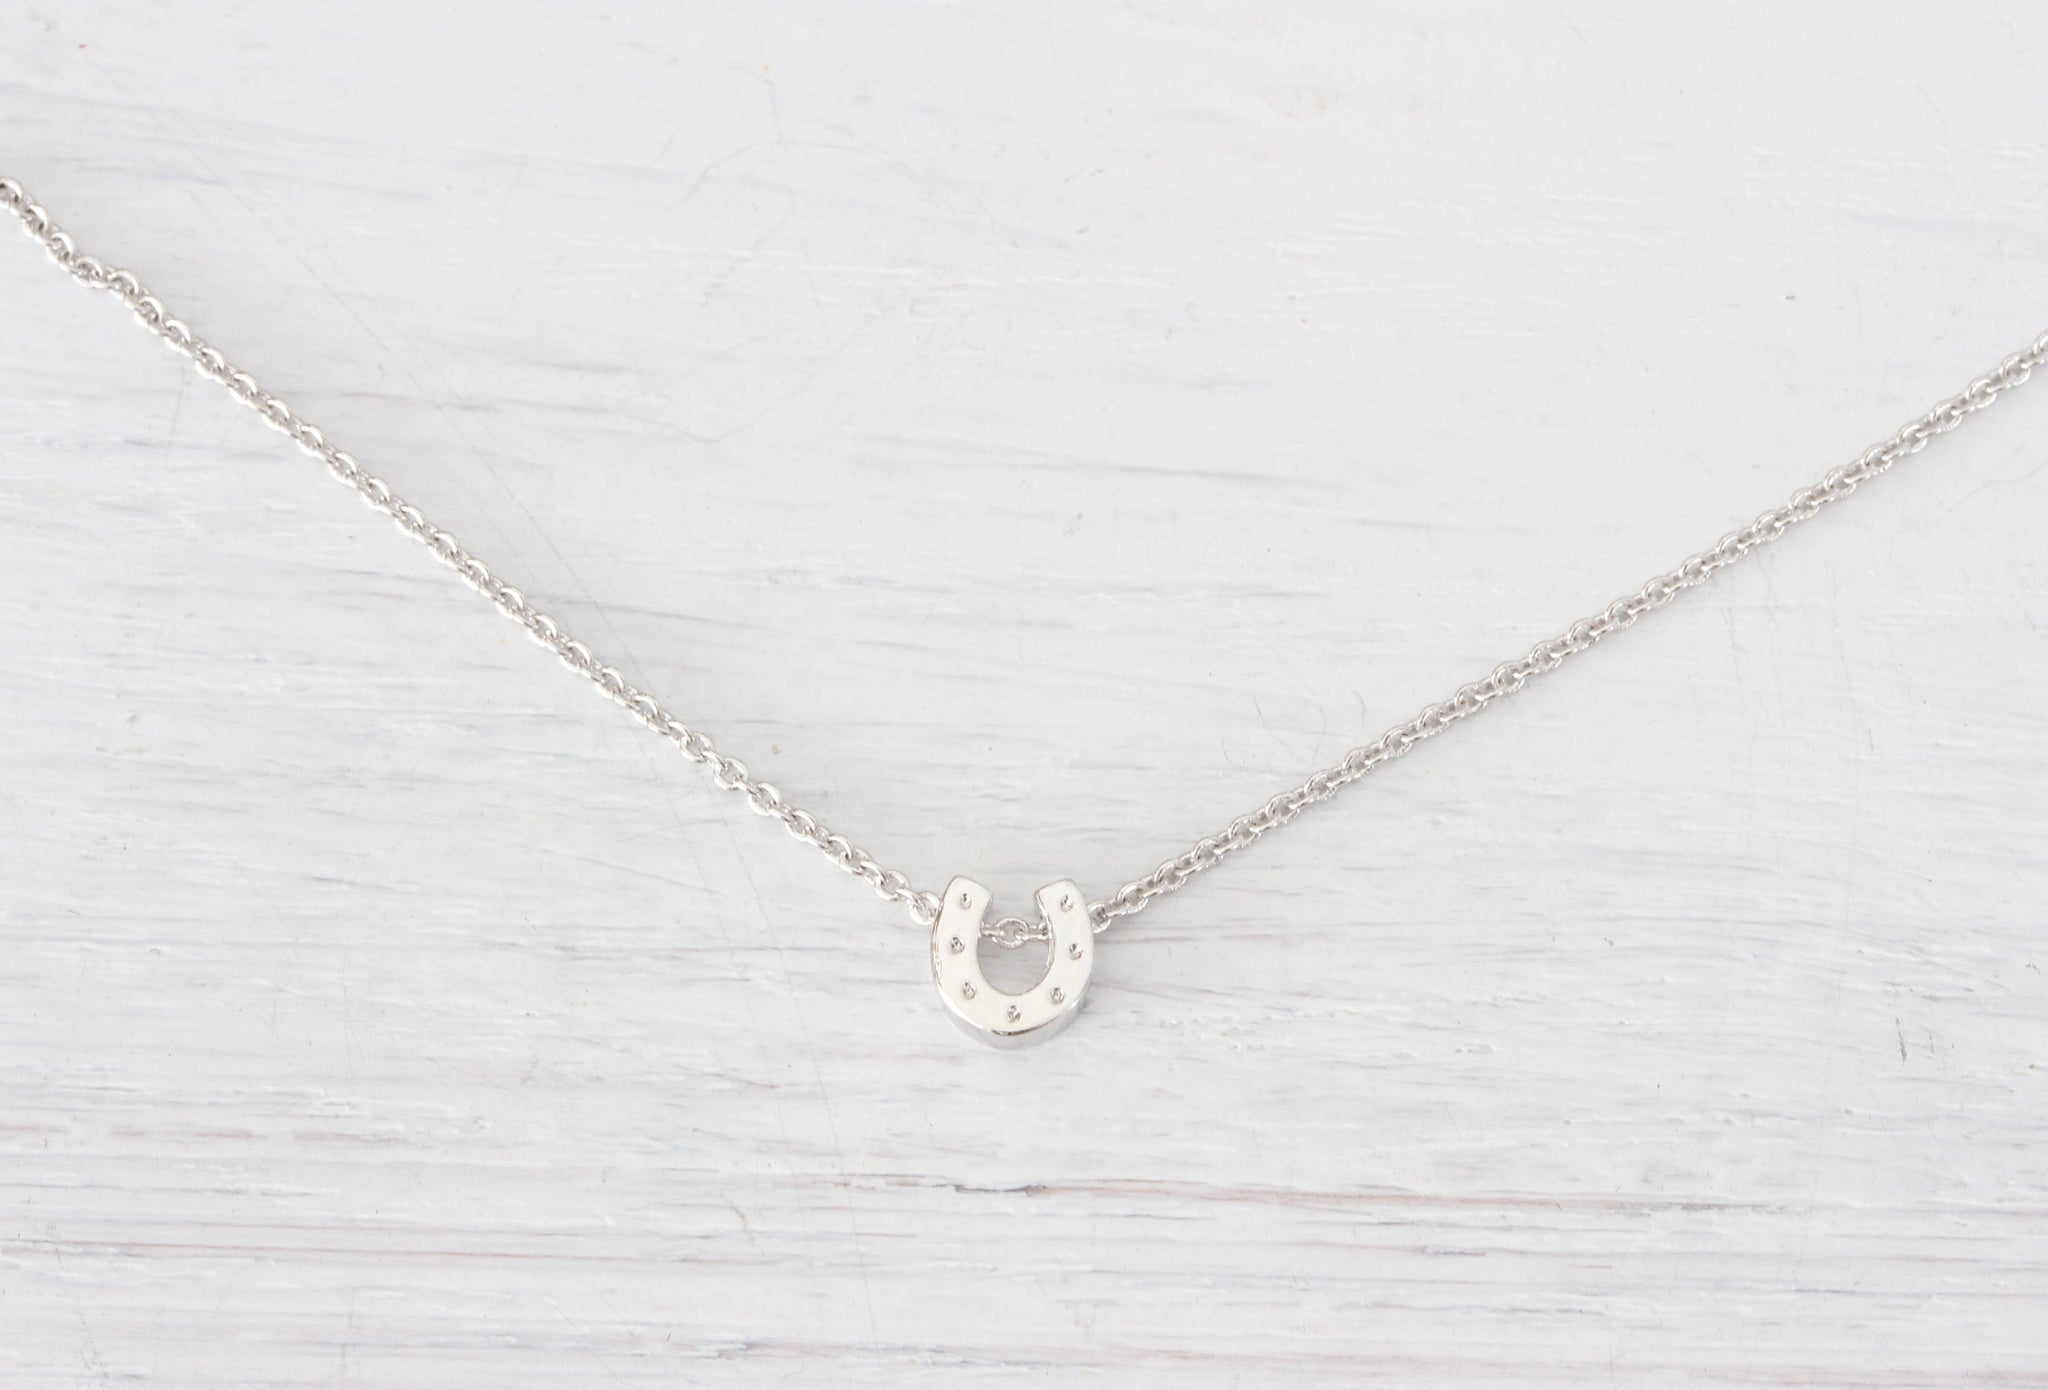 Tiny Silver Lucky Horseshoe Necklace, Small Mini Horse shoe Minimalist Charm Necklace Pendant Jewelry Dainty Simple Delicate - product_type] - Beautiz